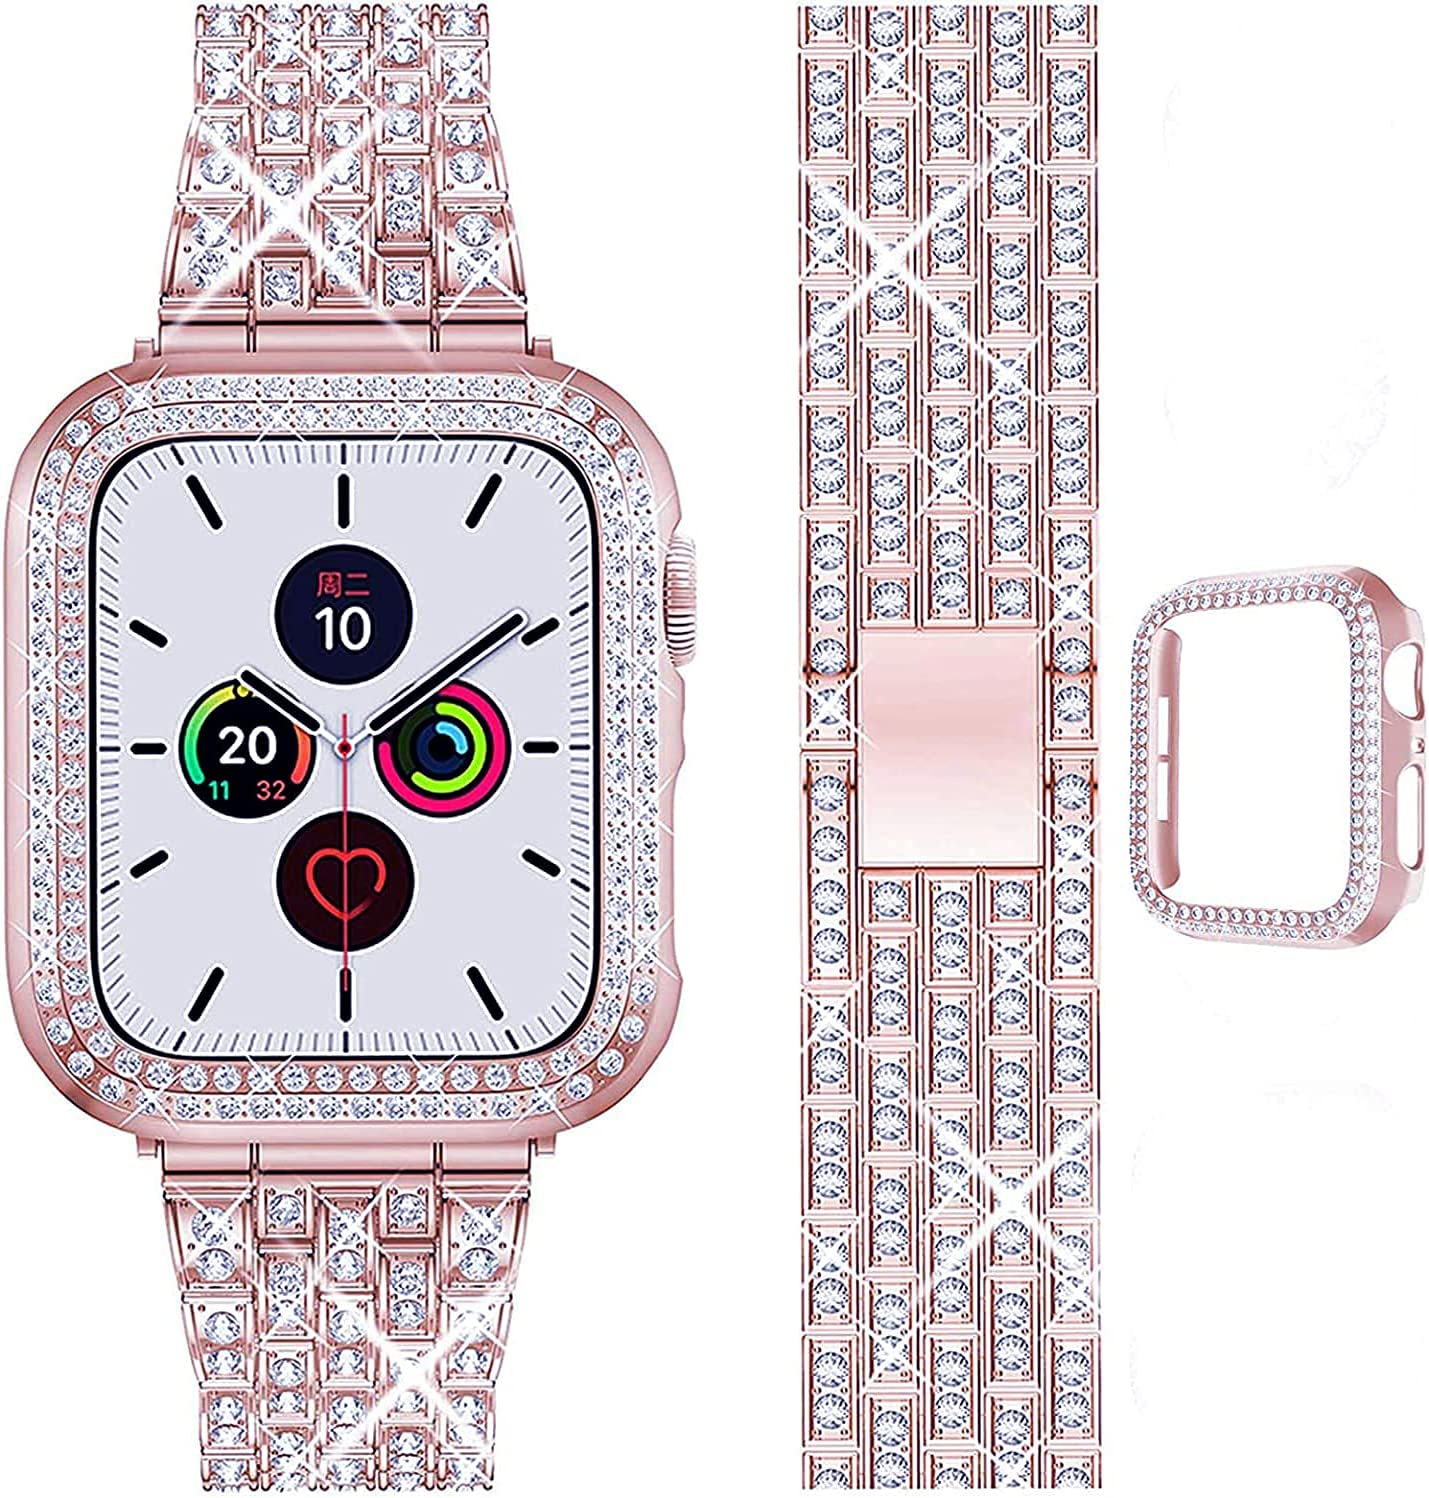 QVLANG Compatible Apple Watch Band 38mm 40mm 42mm 44mm Series 6/5/4/3/2/1/SE,Bling Series Band for Women + Diamond Rhinestone Case, Stainless Steel Metal Bracelet Strap for iWatch (Rose Pink, 44mm)